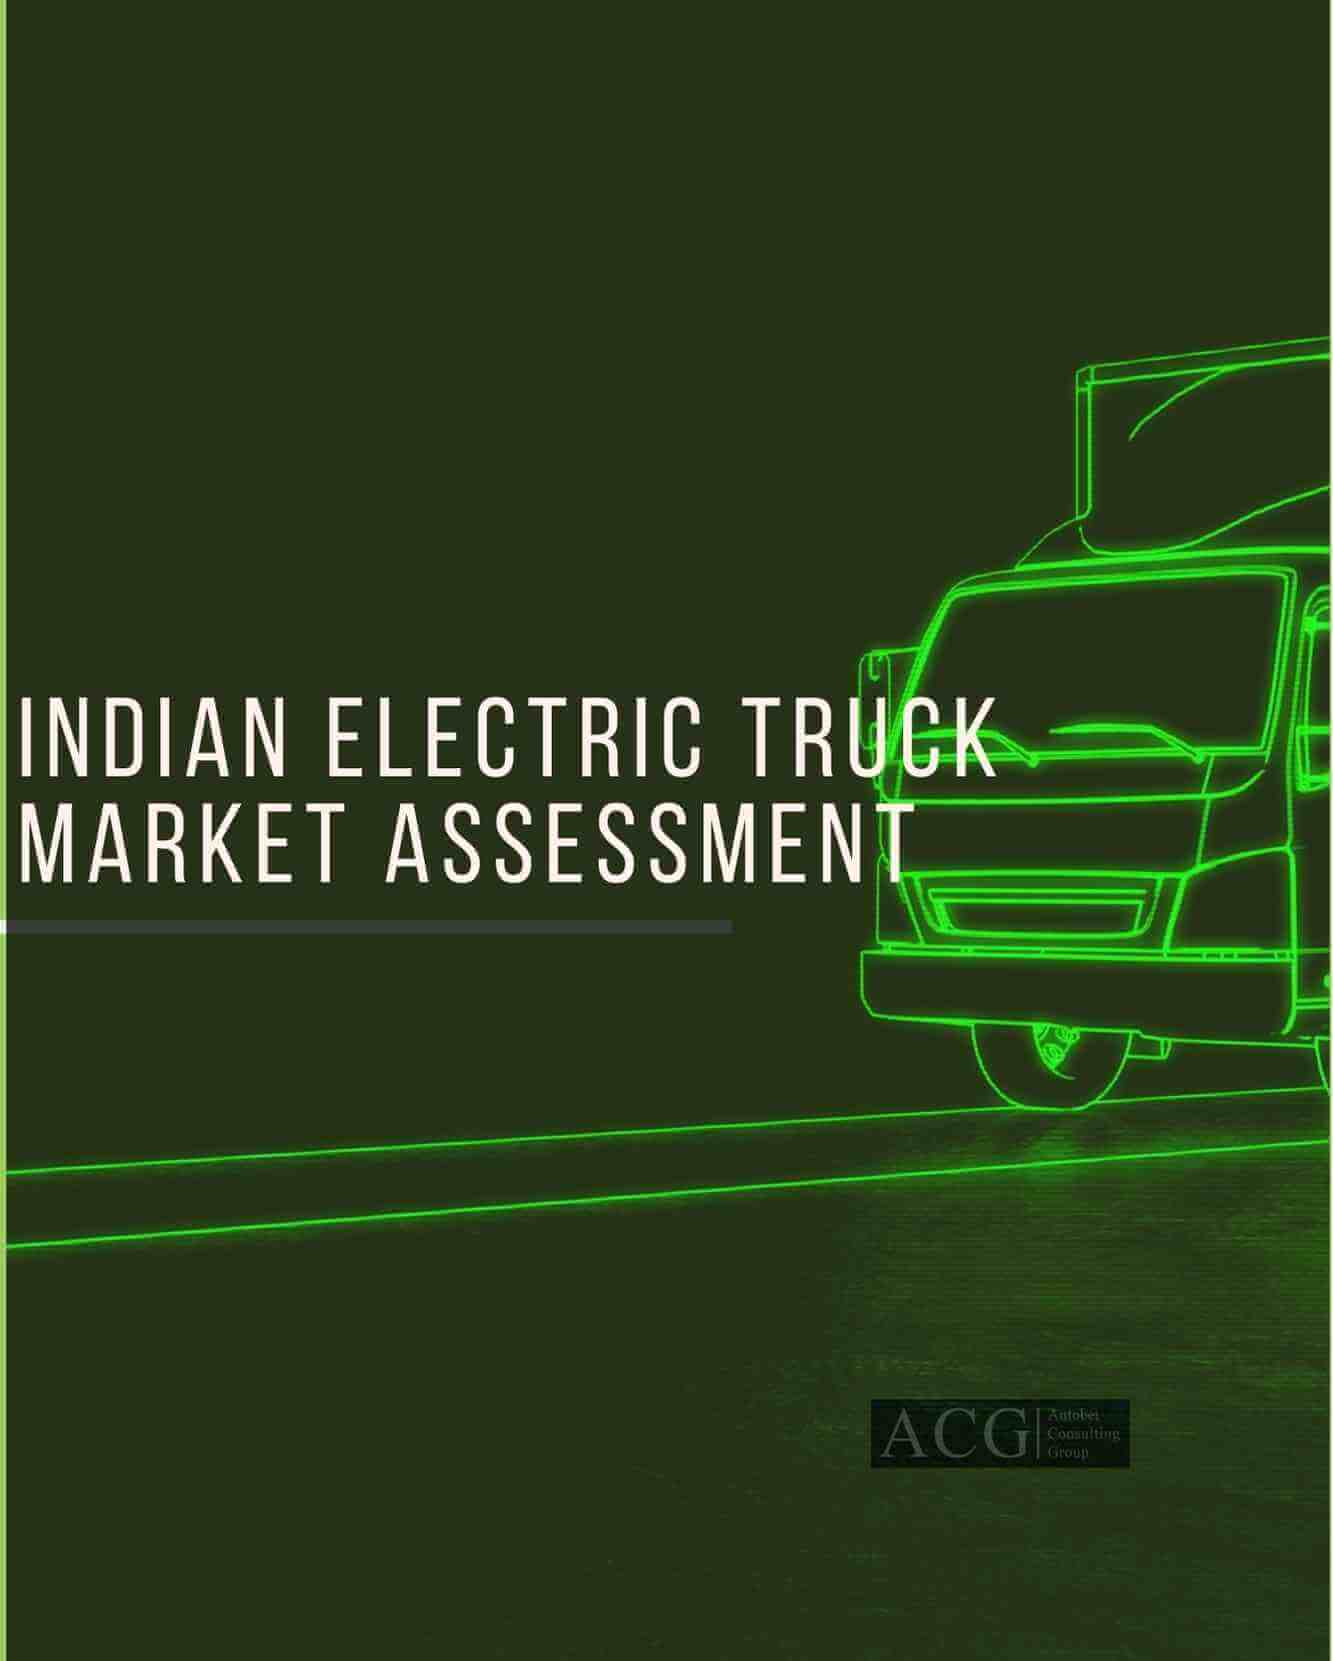 Indian Electric Truck Market Assessment